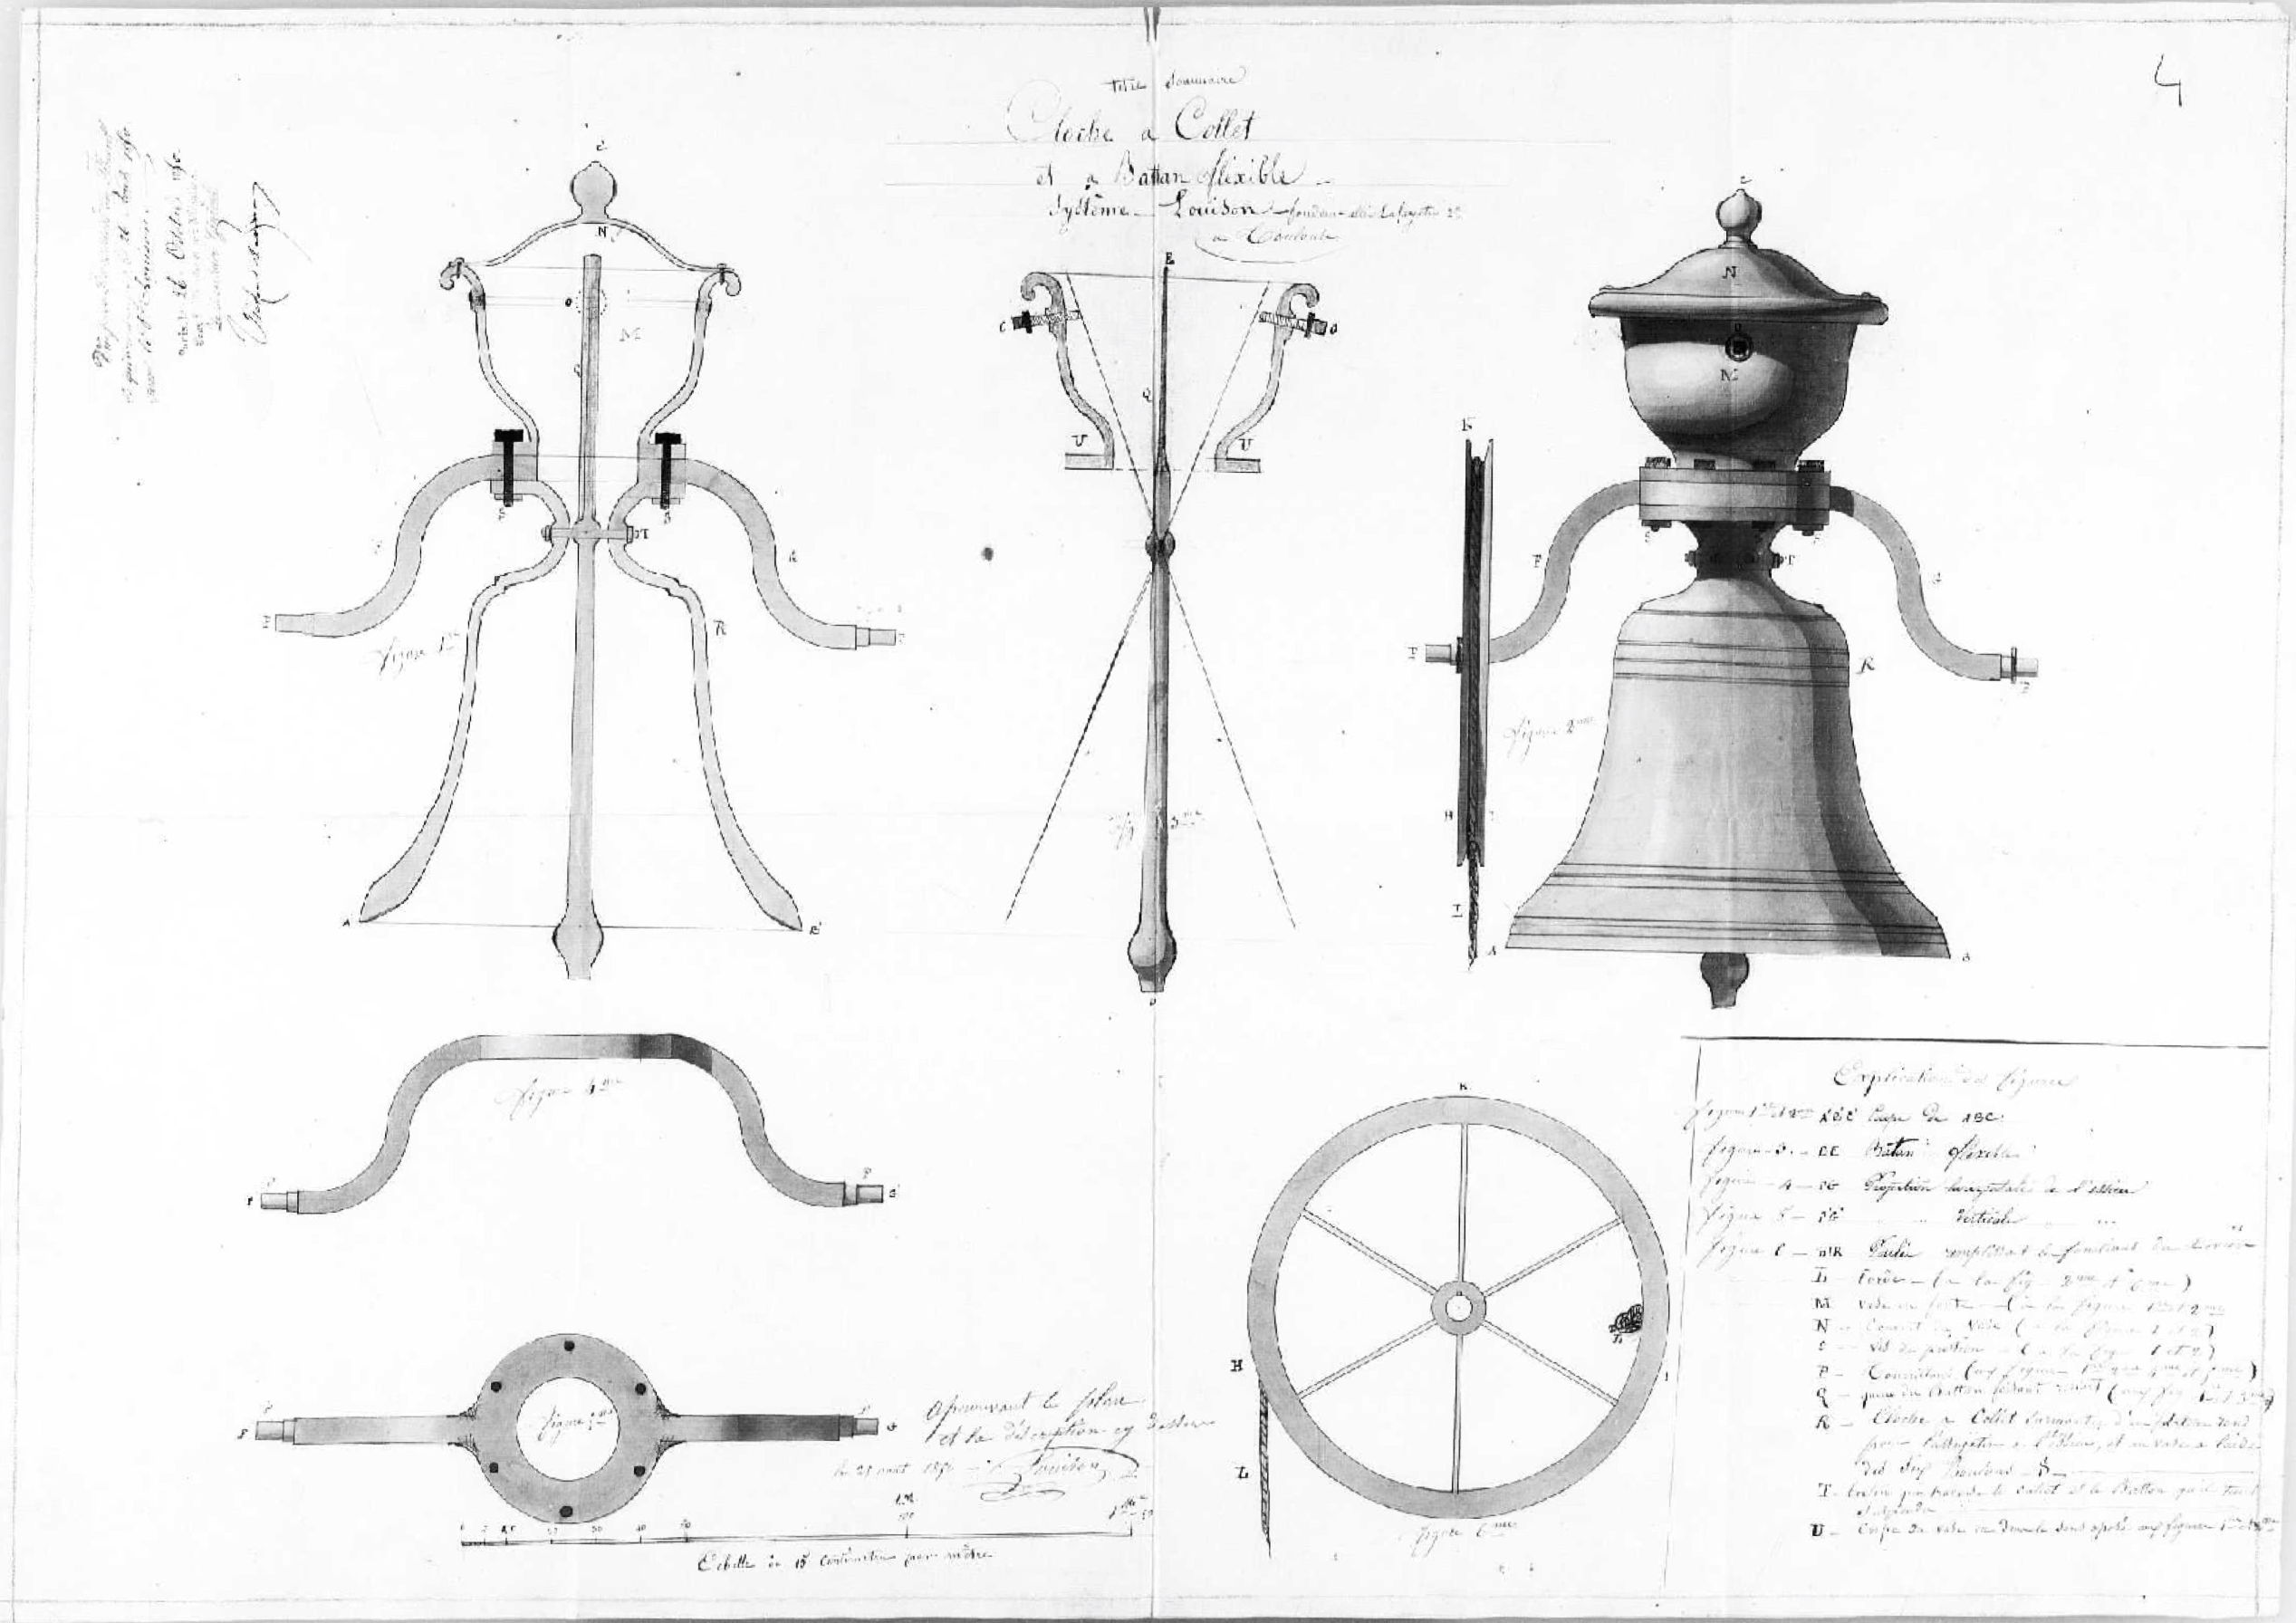 Brevet Louison 1850 : Cloche à collet et à battant flexible